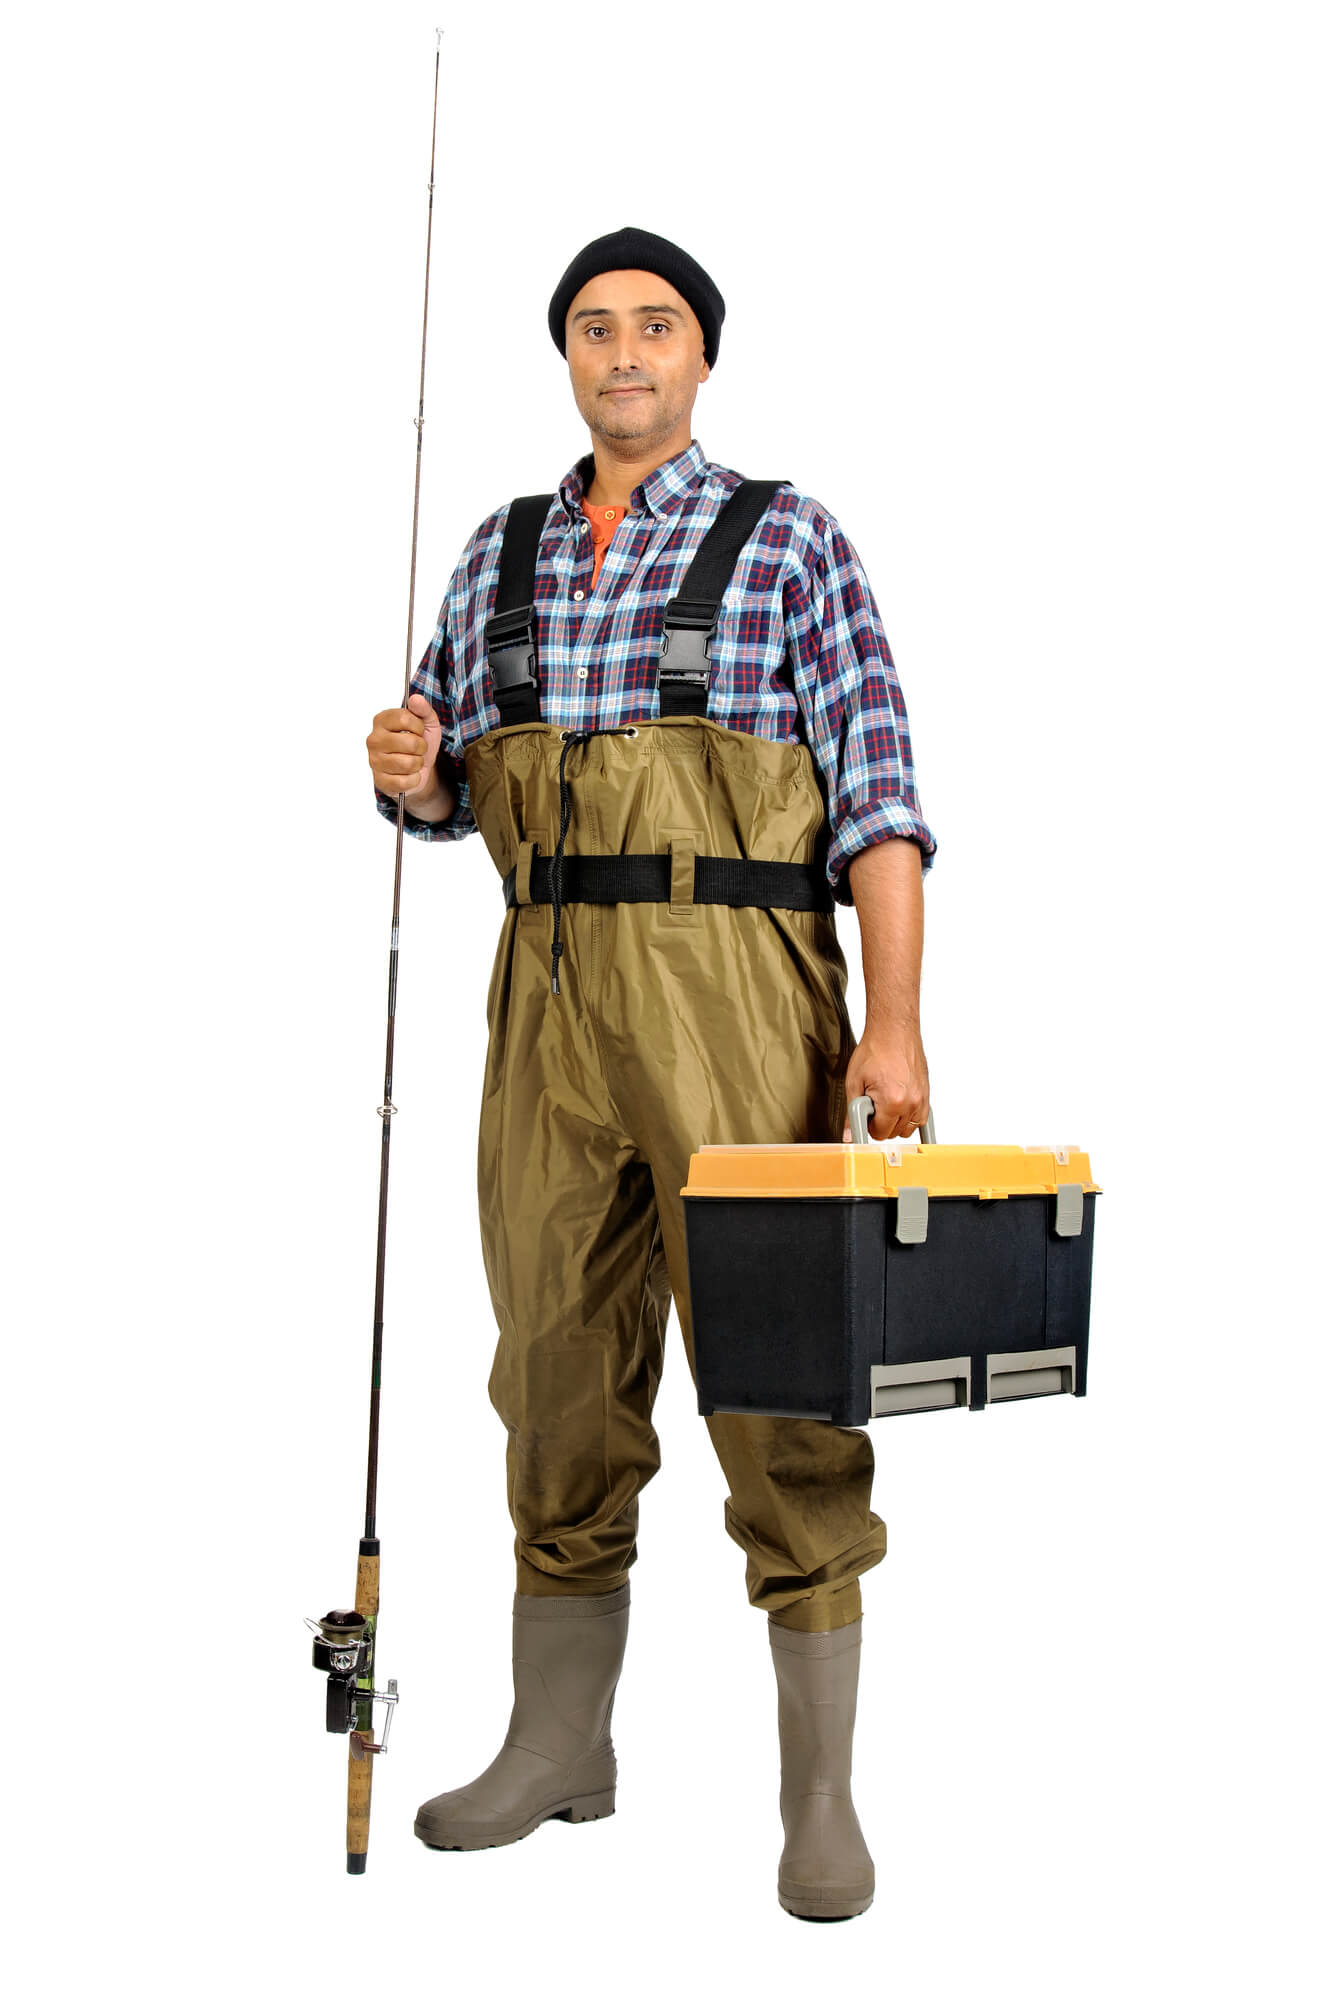 Man in Fishing Waders With Tackle